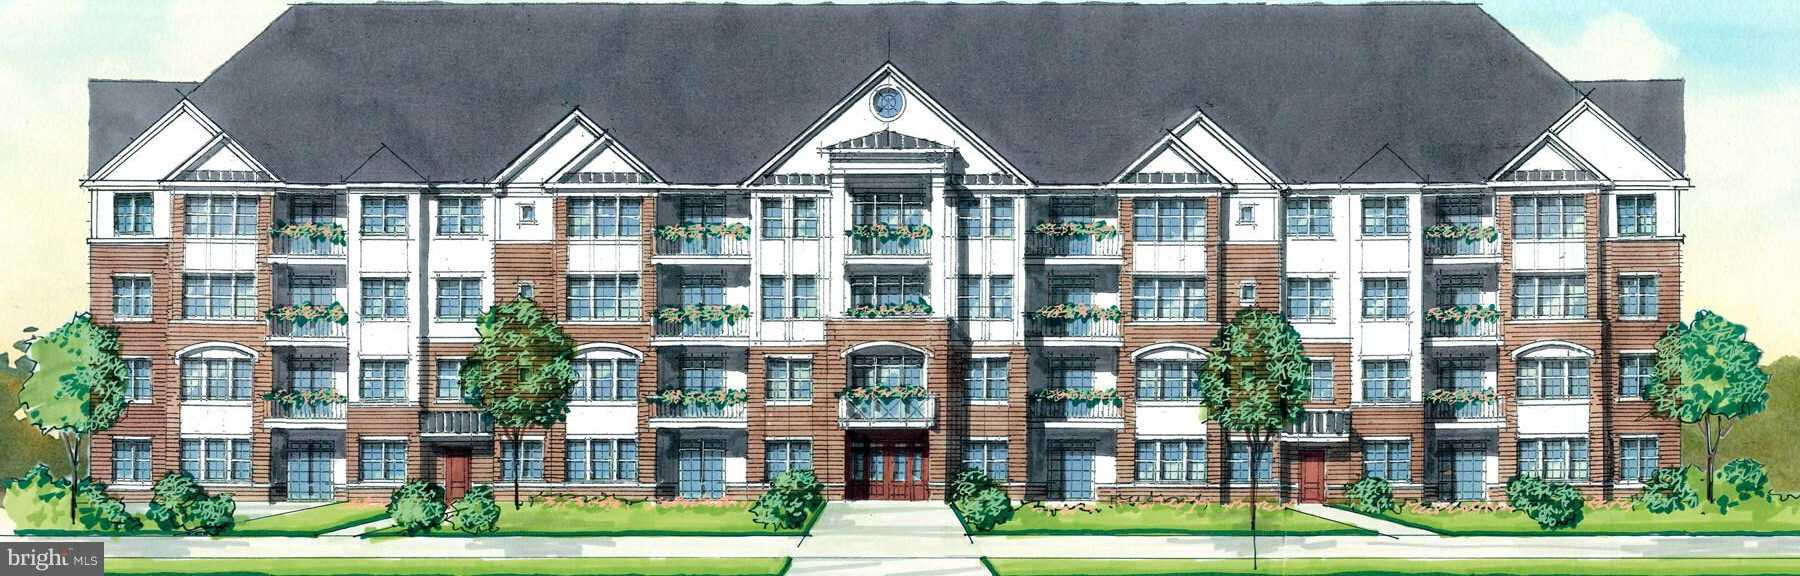 $295,000 - 2Br/2Ba -  for Sale in Overlook At Gateway, Bel Air